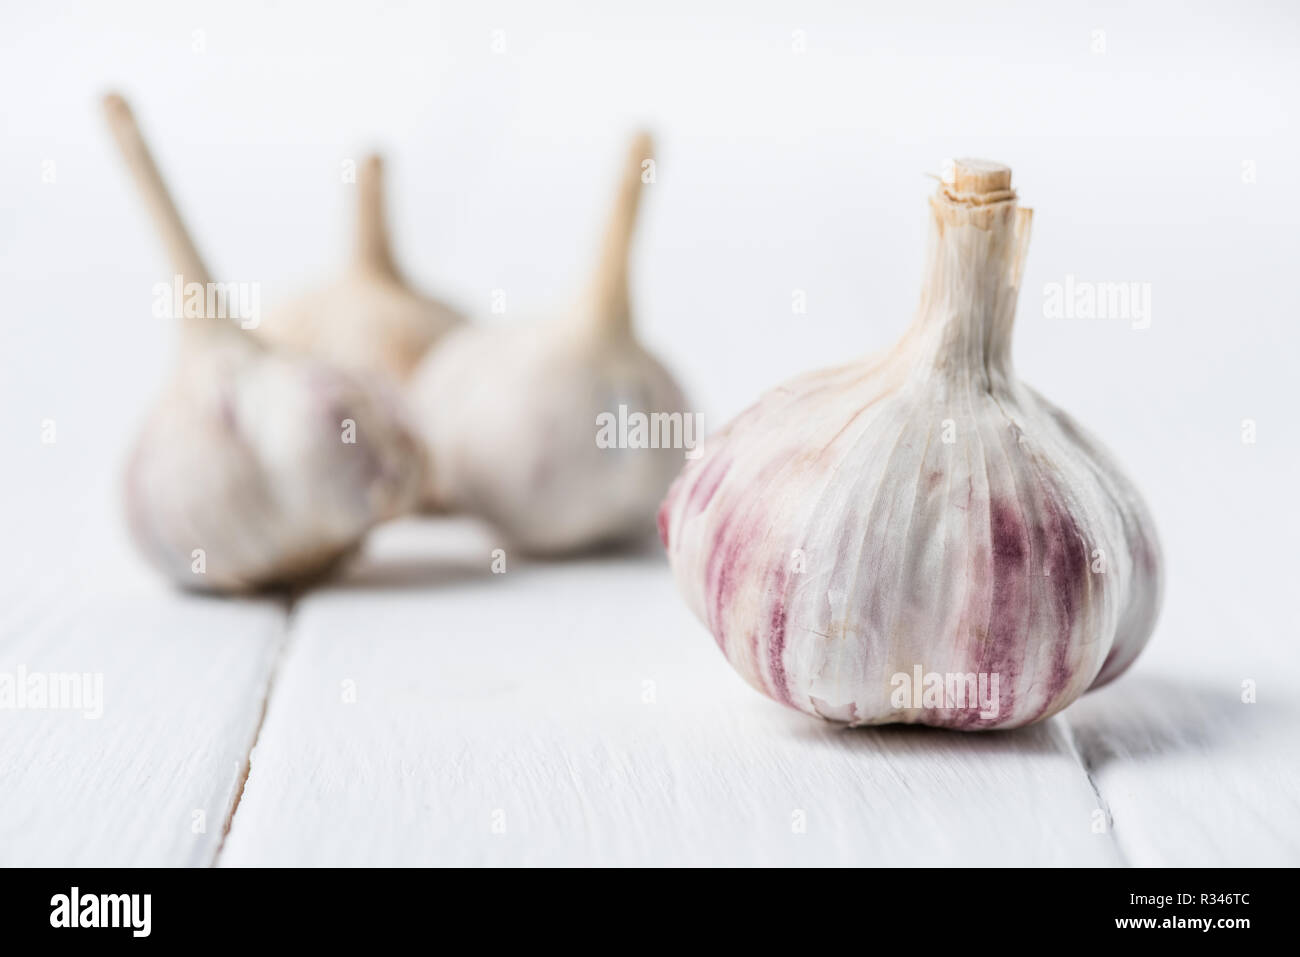 Ripe garlic bulbs on white wooden table - Stock Image